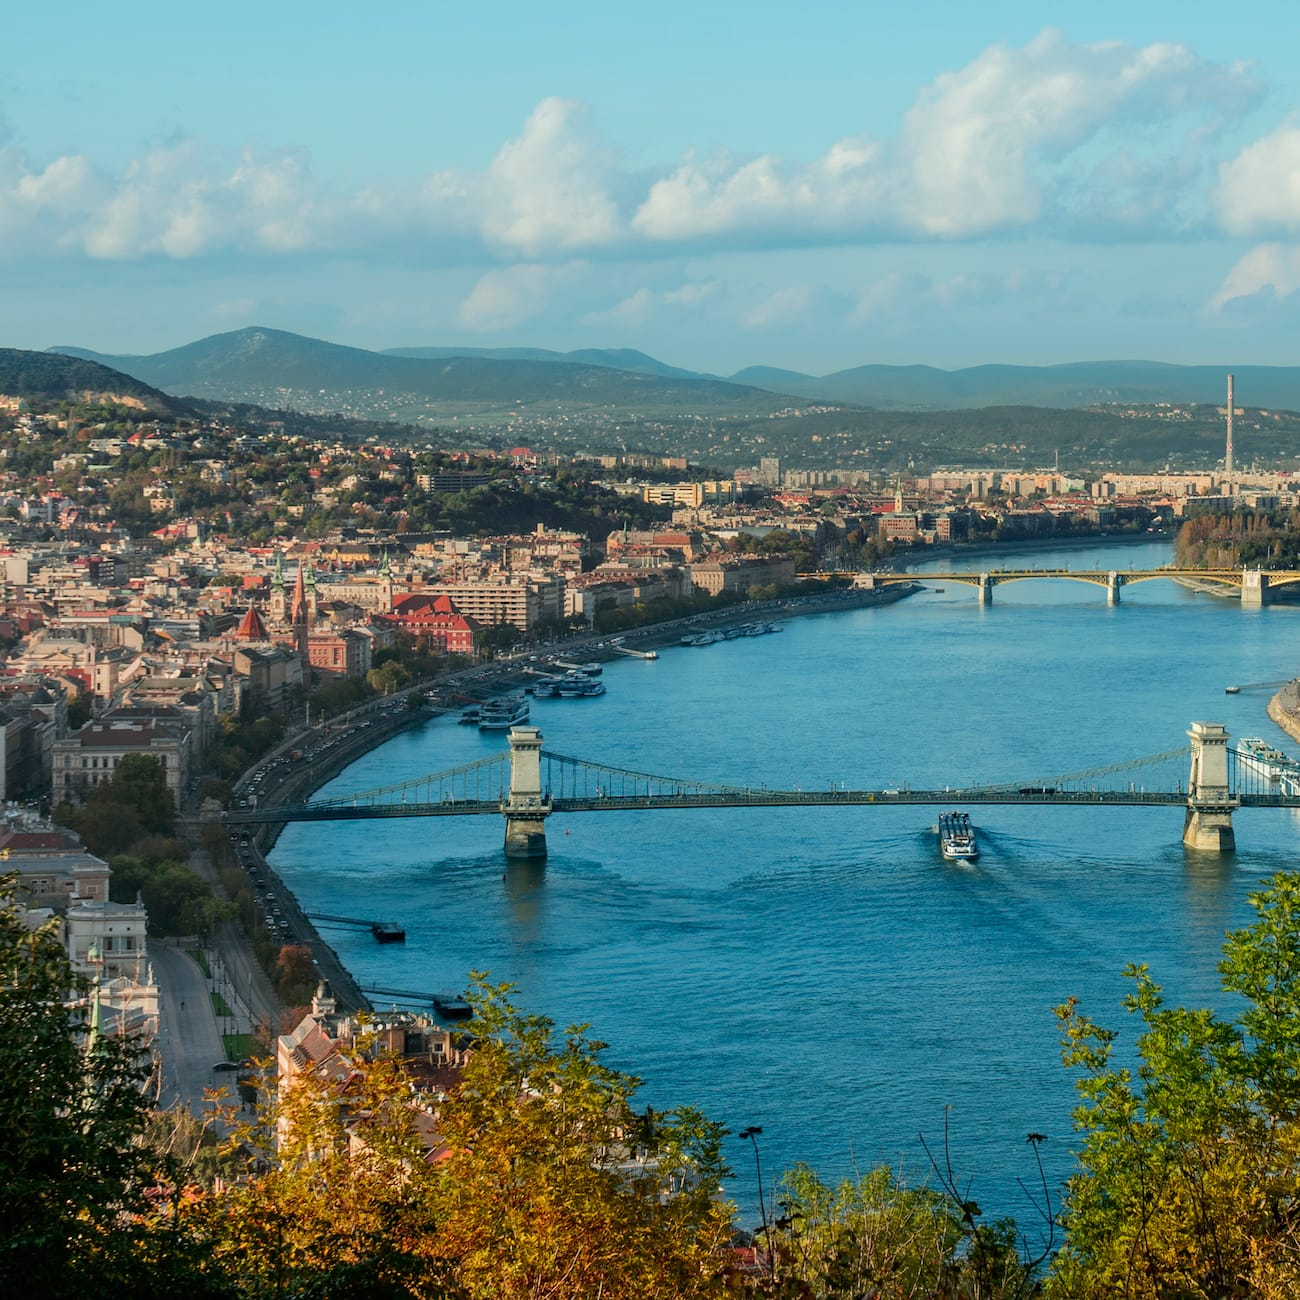 The Danube River with 2 bridges and city buildings on both shores